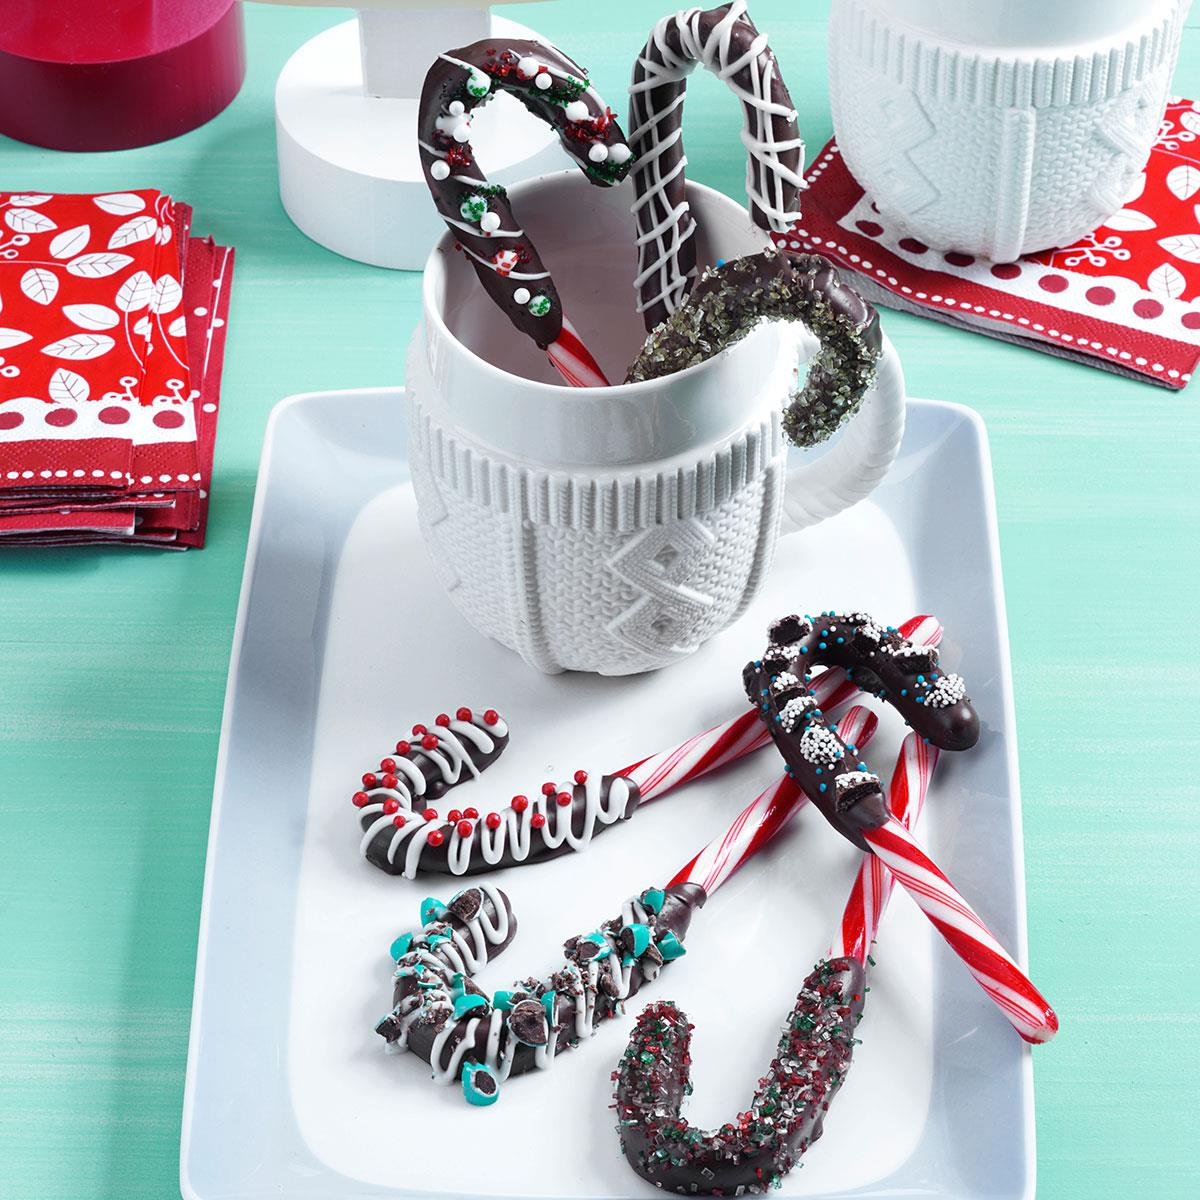 Chocolate-Dipped Candy Canes Recipe | Taste of Home